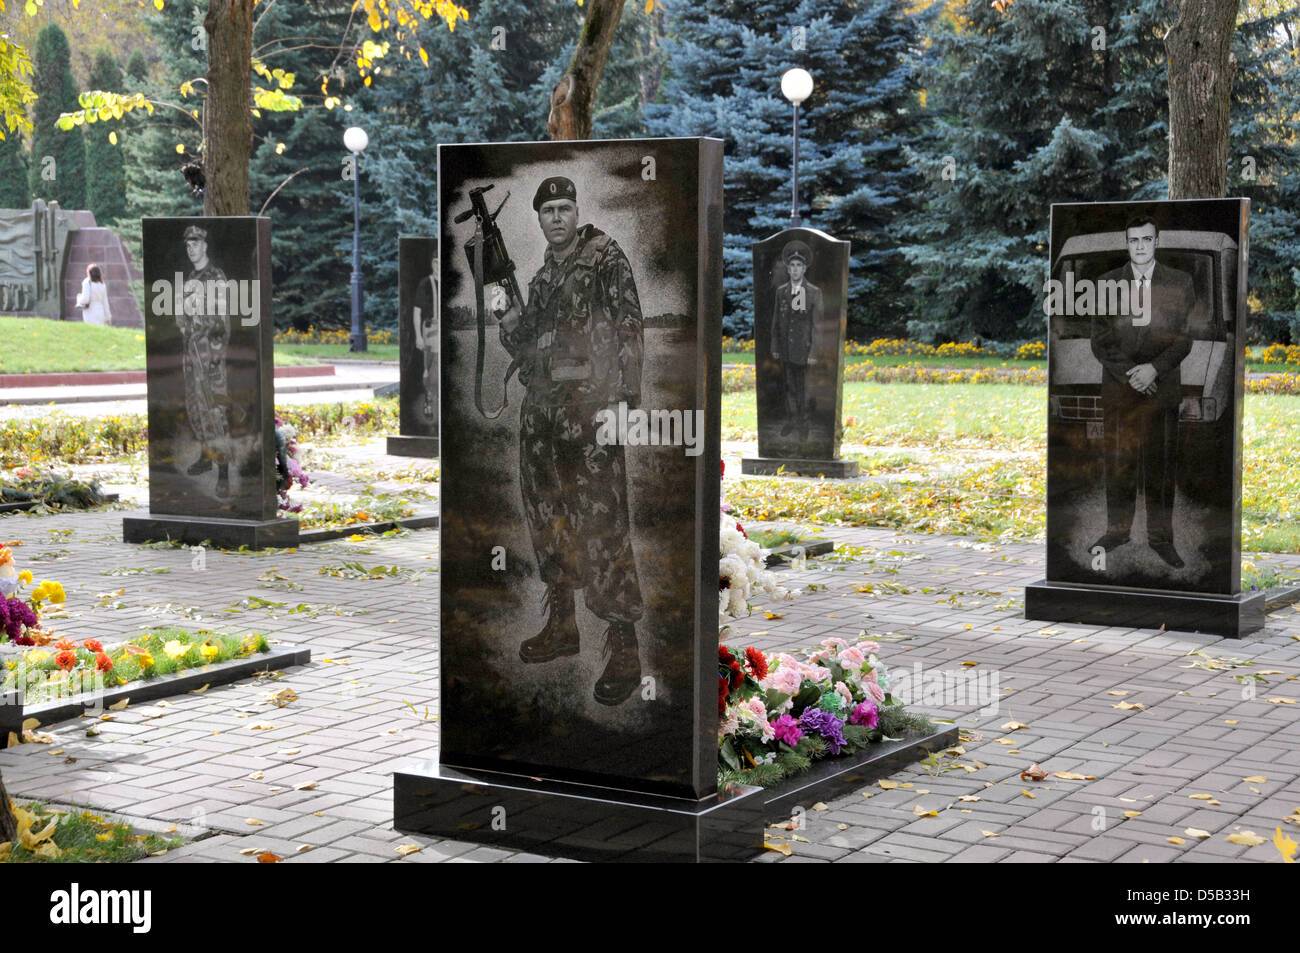 Gravestones of Russian soldiers who fell in the South Ossetia conflict pictured at a war cemetery in Kursk, Russia, - Stock Image